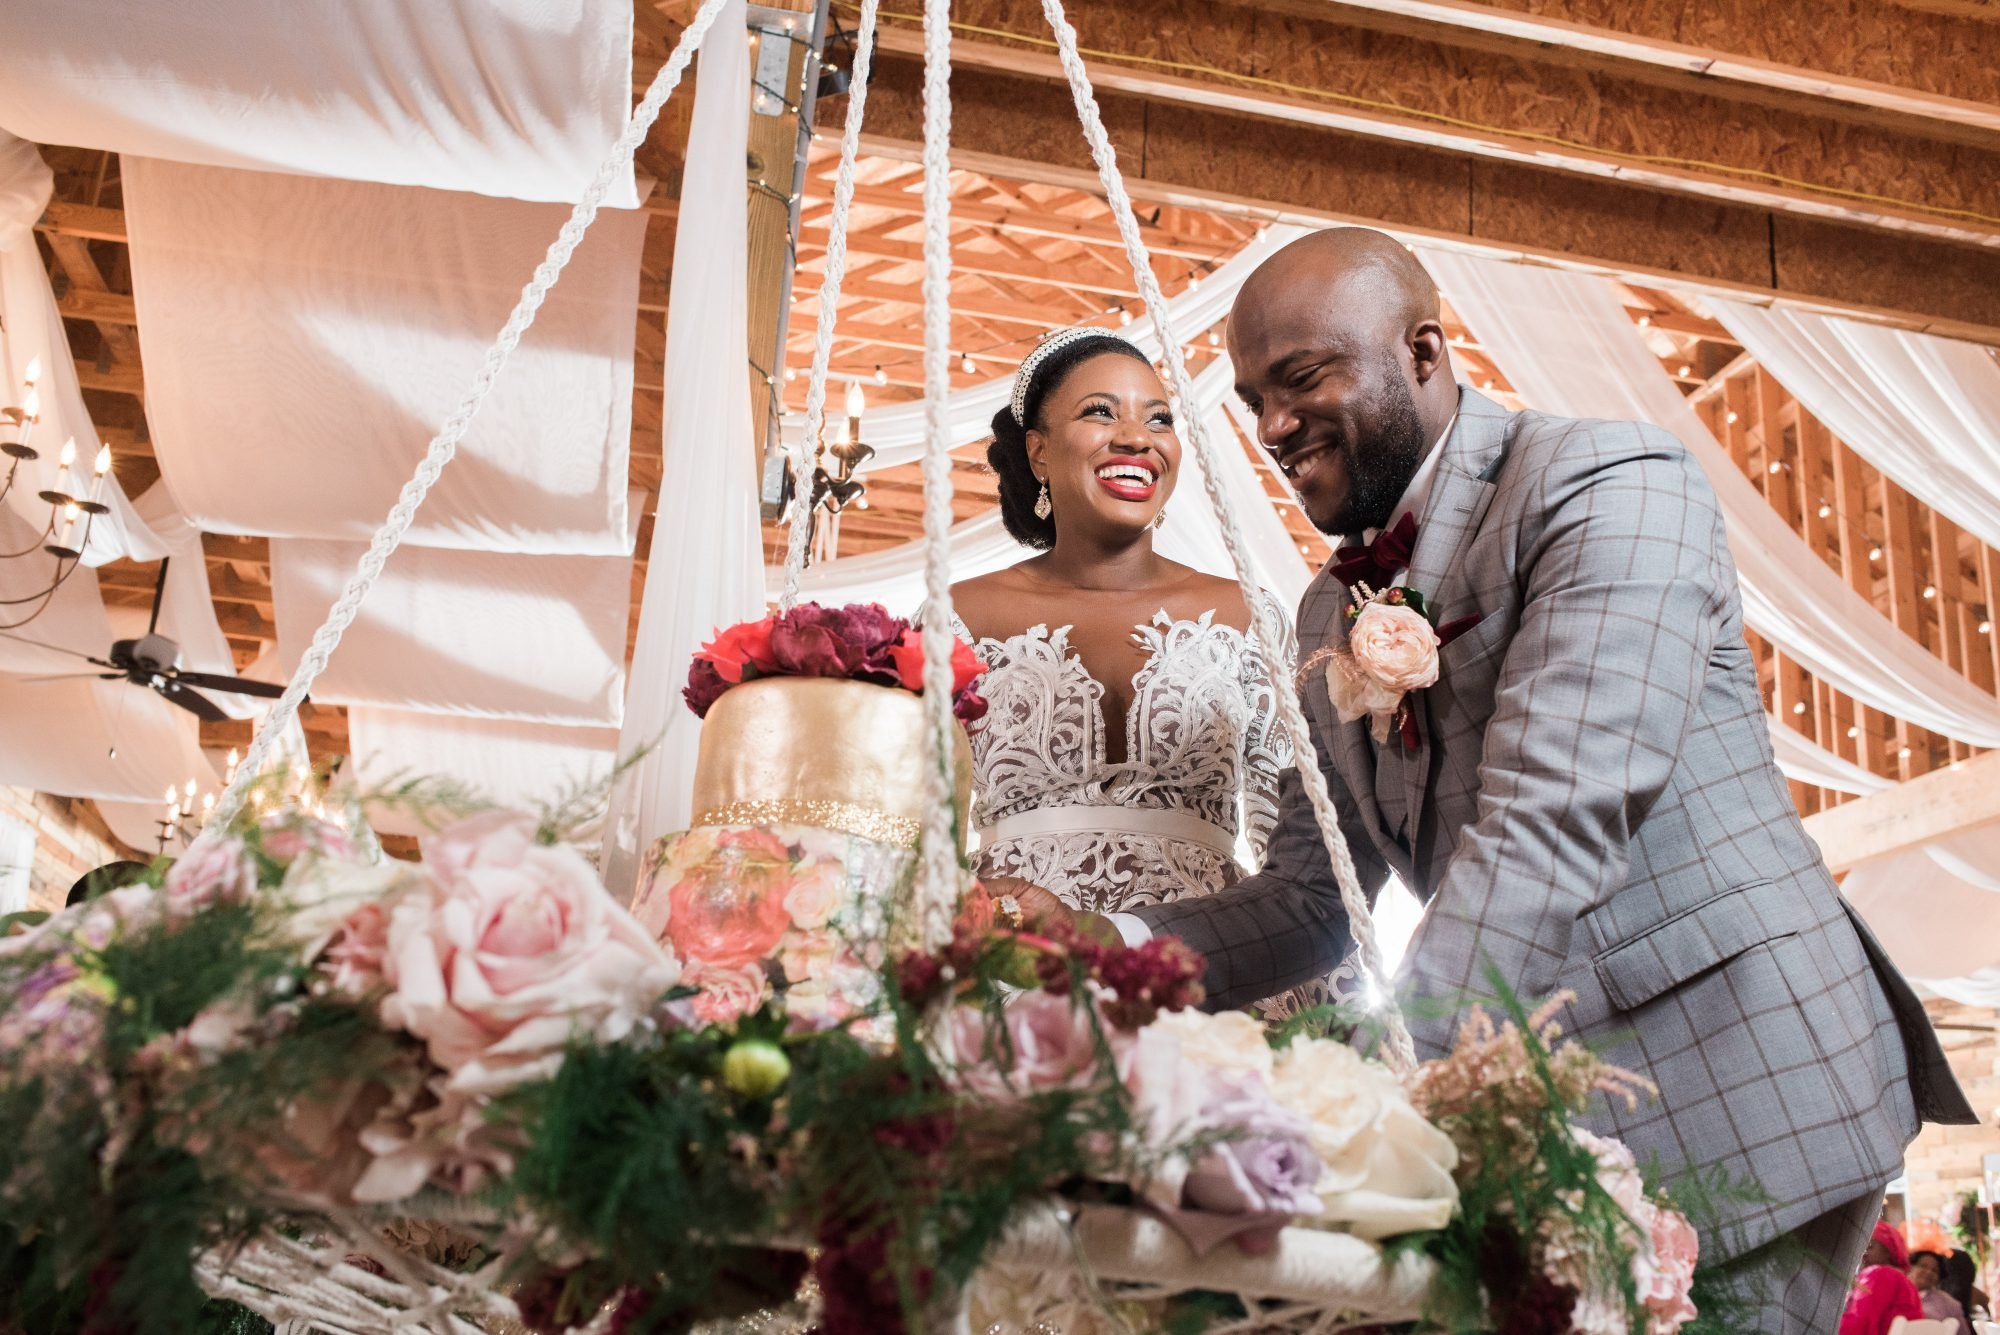 bisola and tomiwa wedding cake cutting ceremony